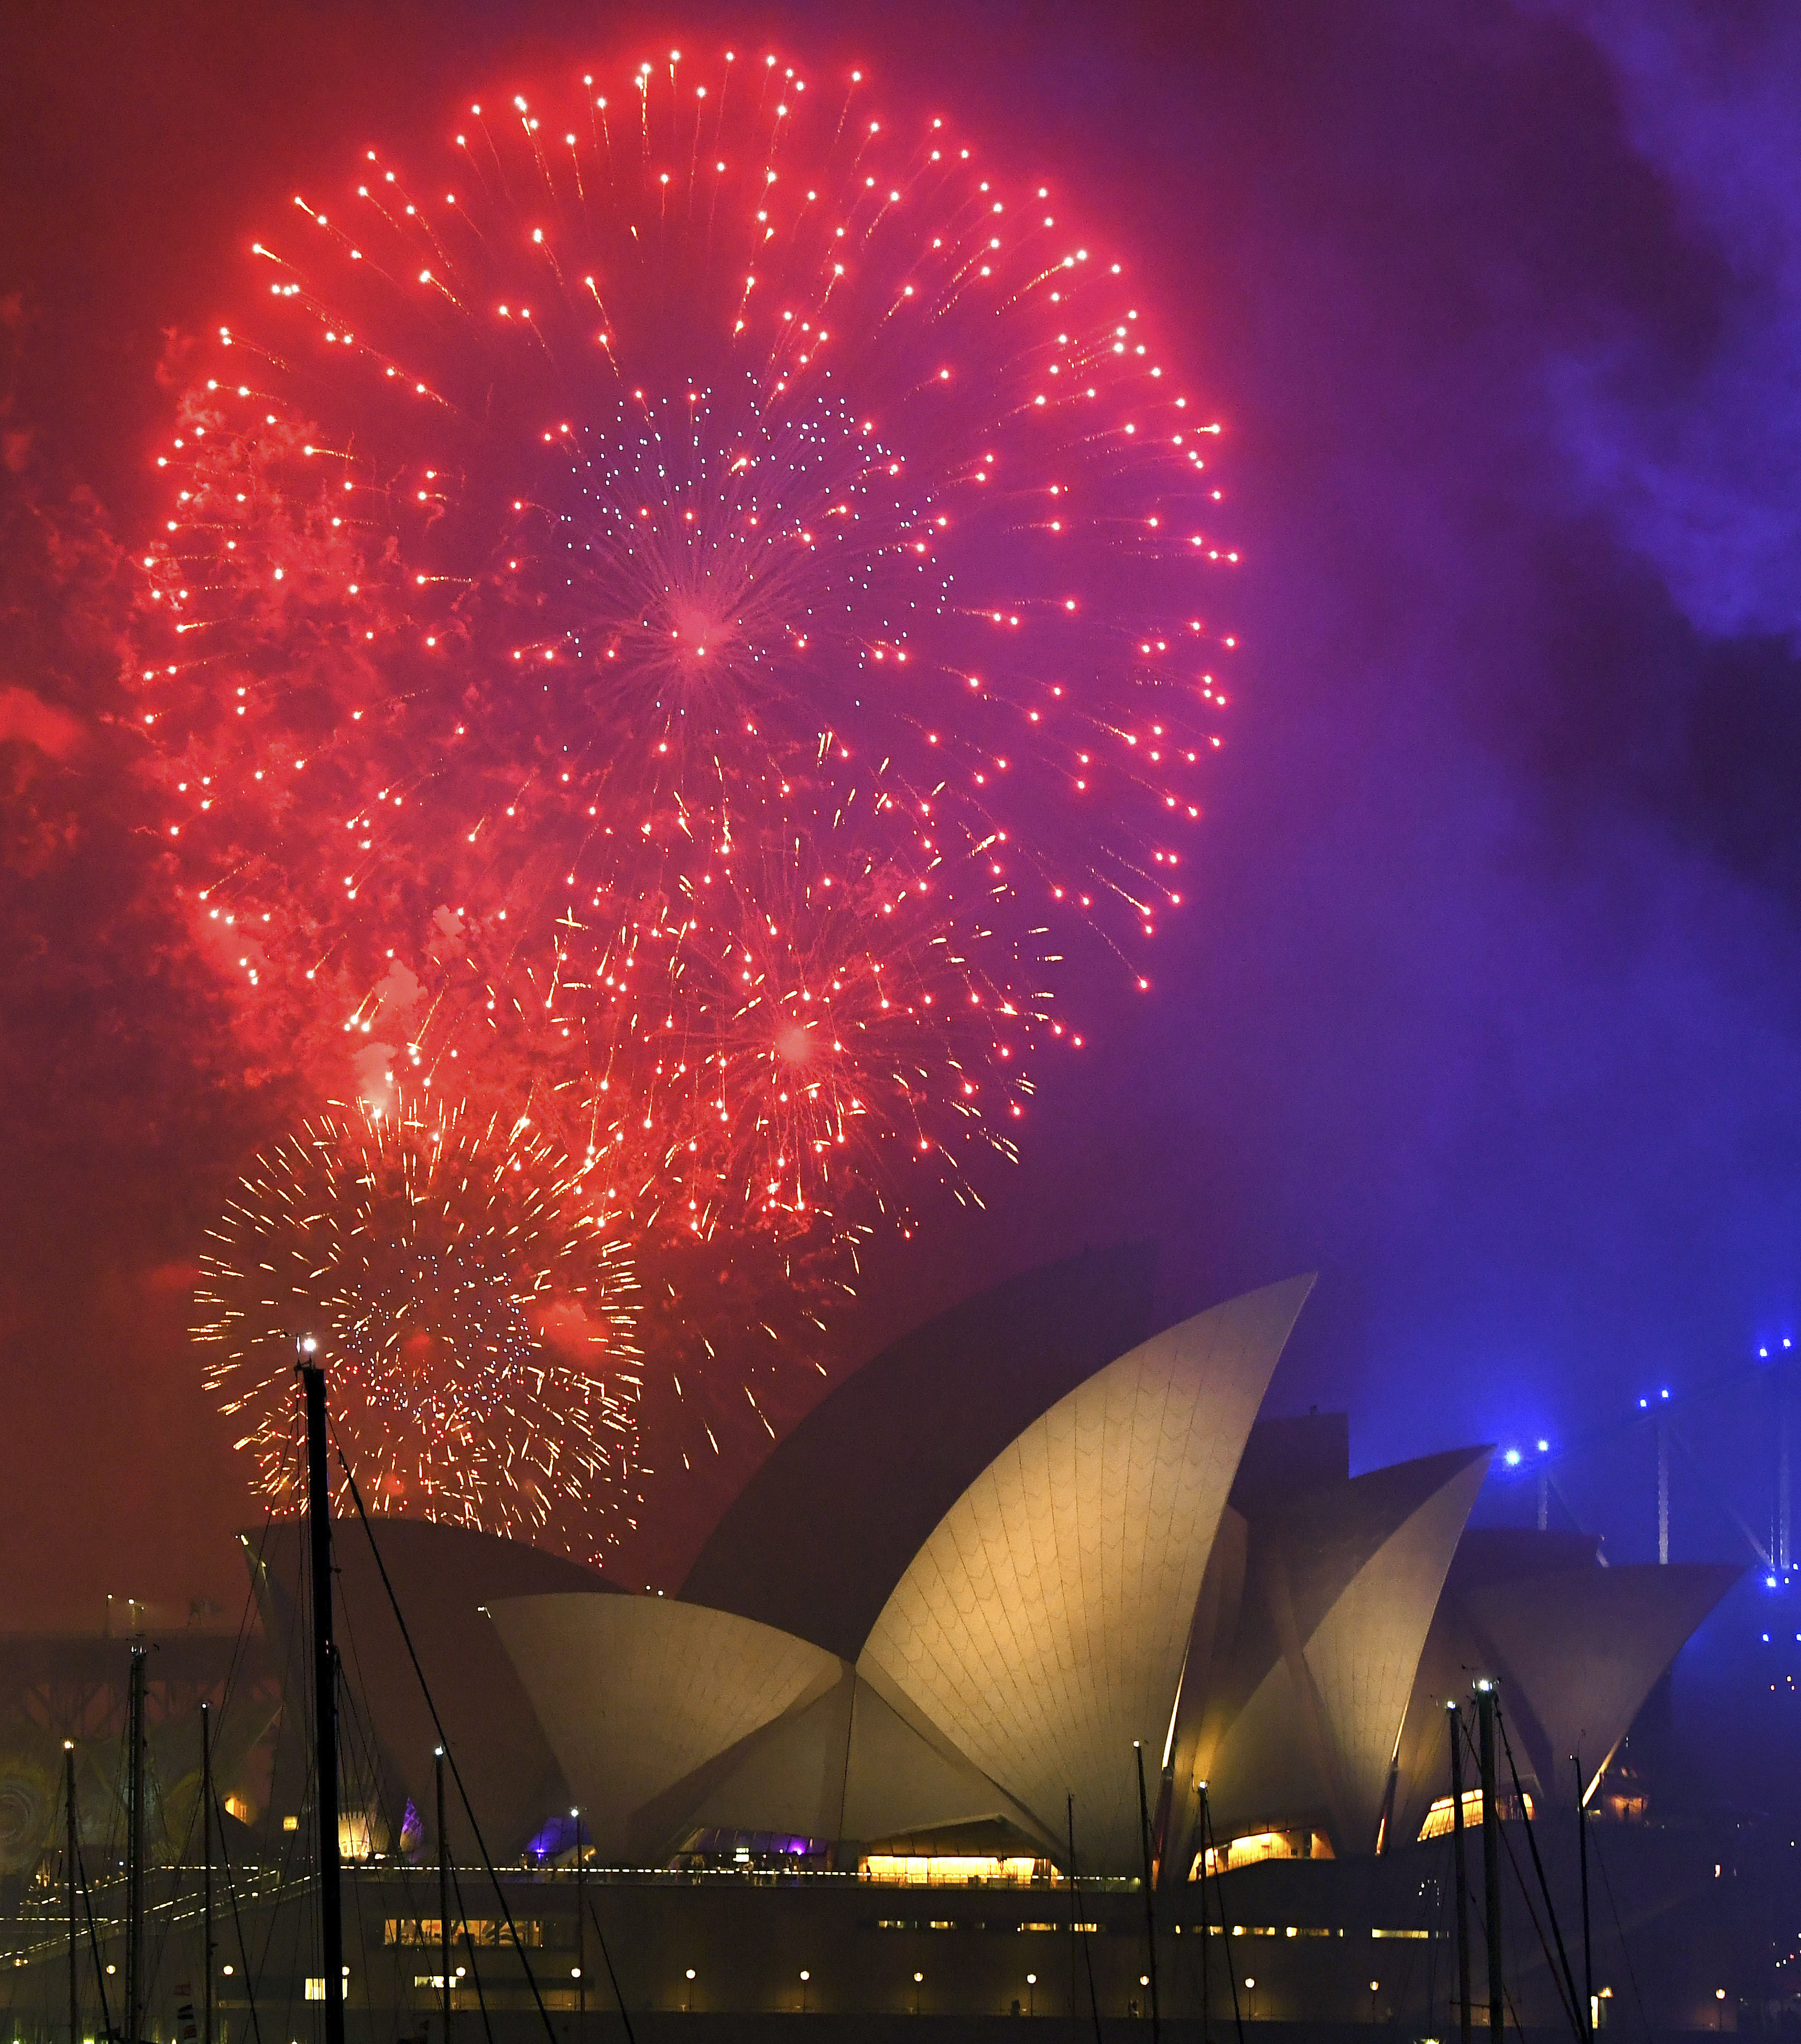 <div class='meta'><div class='origin-logo' data-origin='AP'></div><span class='caption-text' data-credit='David Moir/AAP Image via AP'>Fireworks explode over the Opera House during New Year's Eve celebrations in Sydney, Australia, Sunday, Dec. 31, 2017.</span></div>